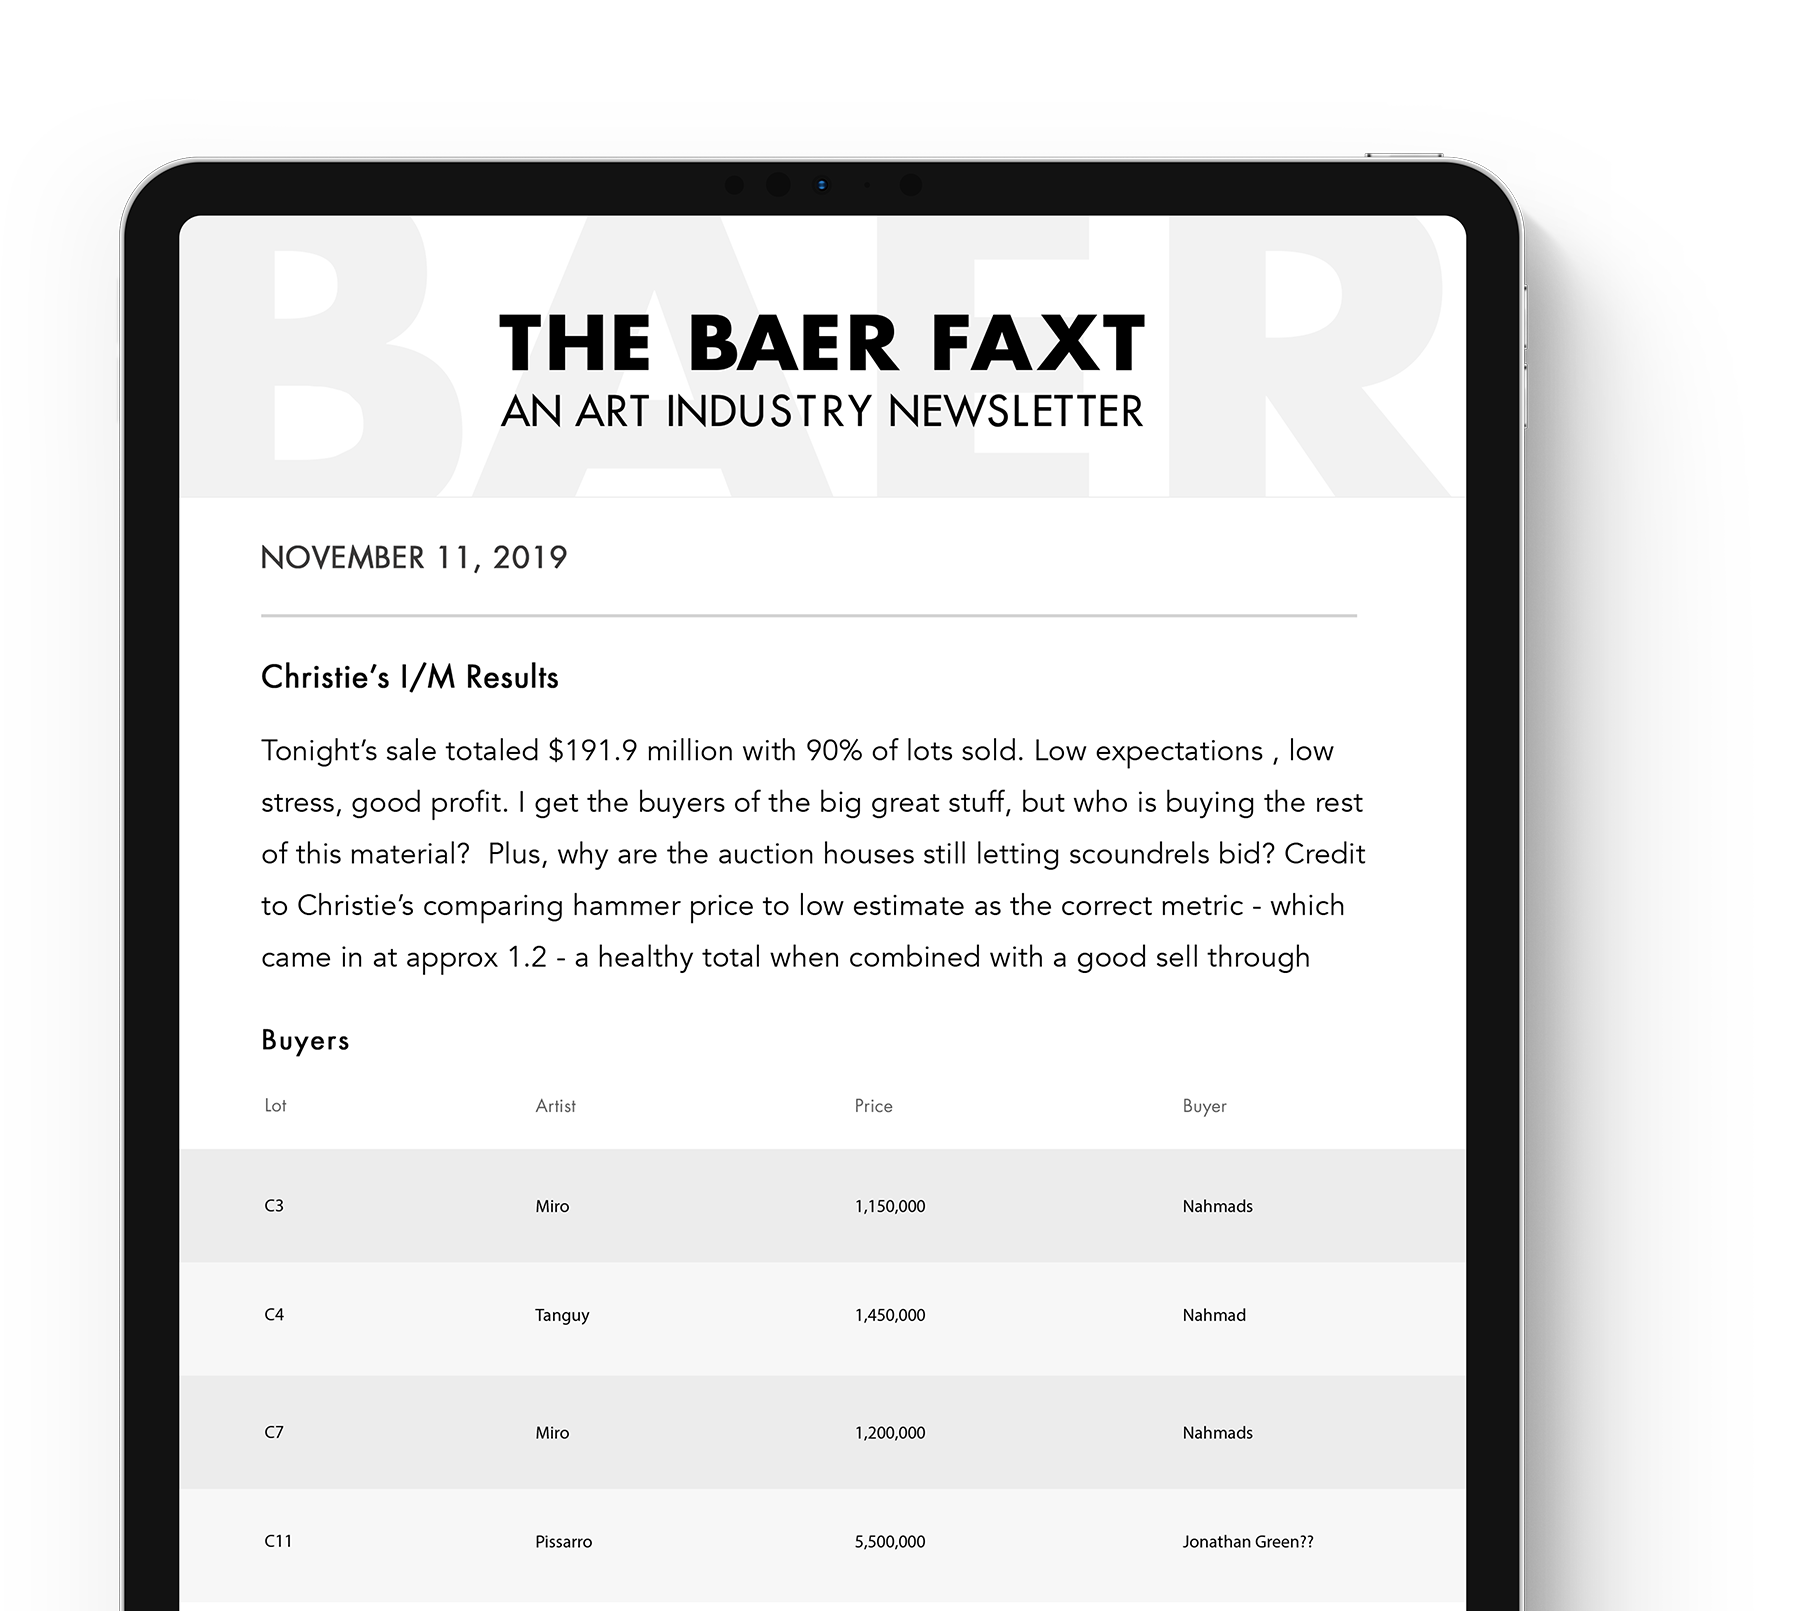 About The Baer Faxt